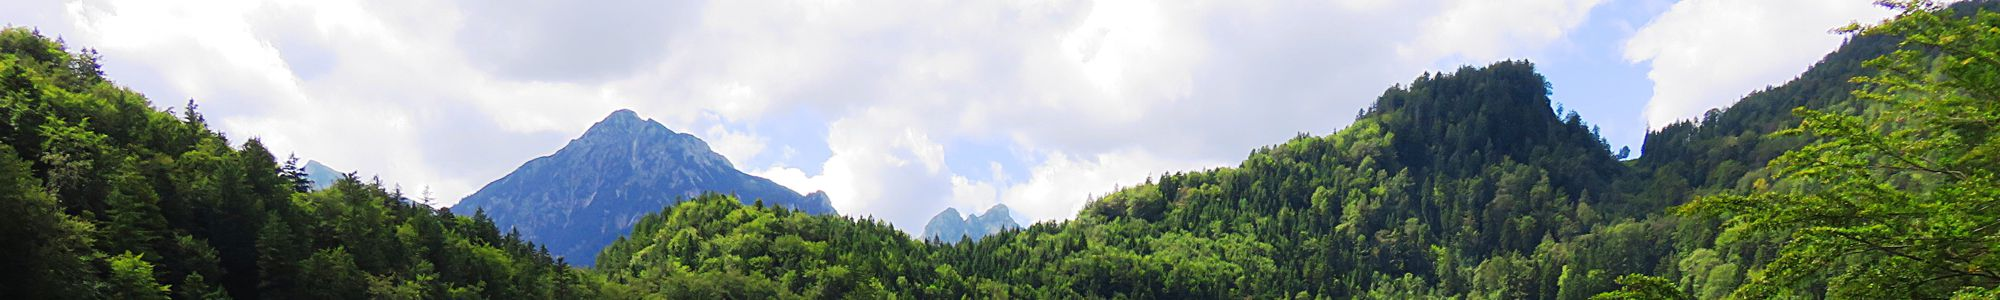 Trees in in front of a mountain